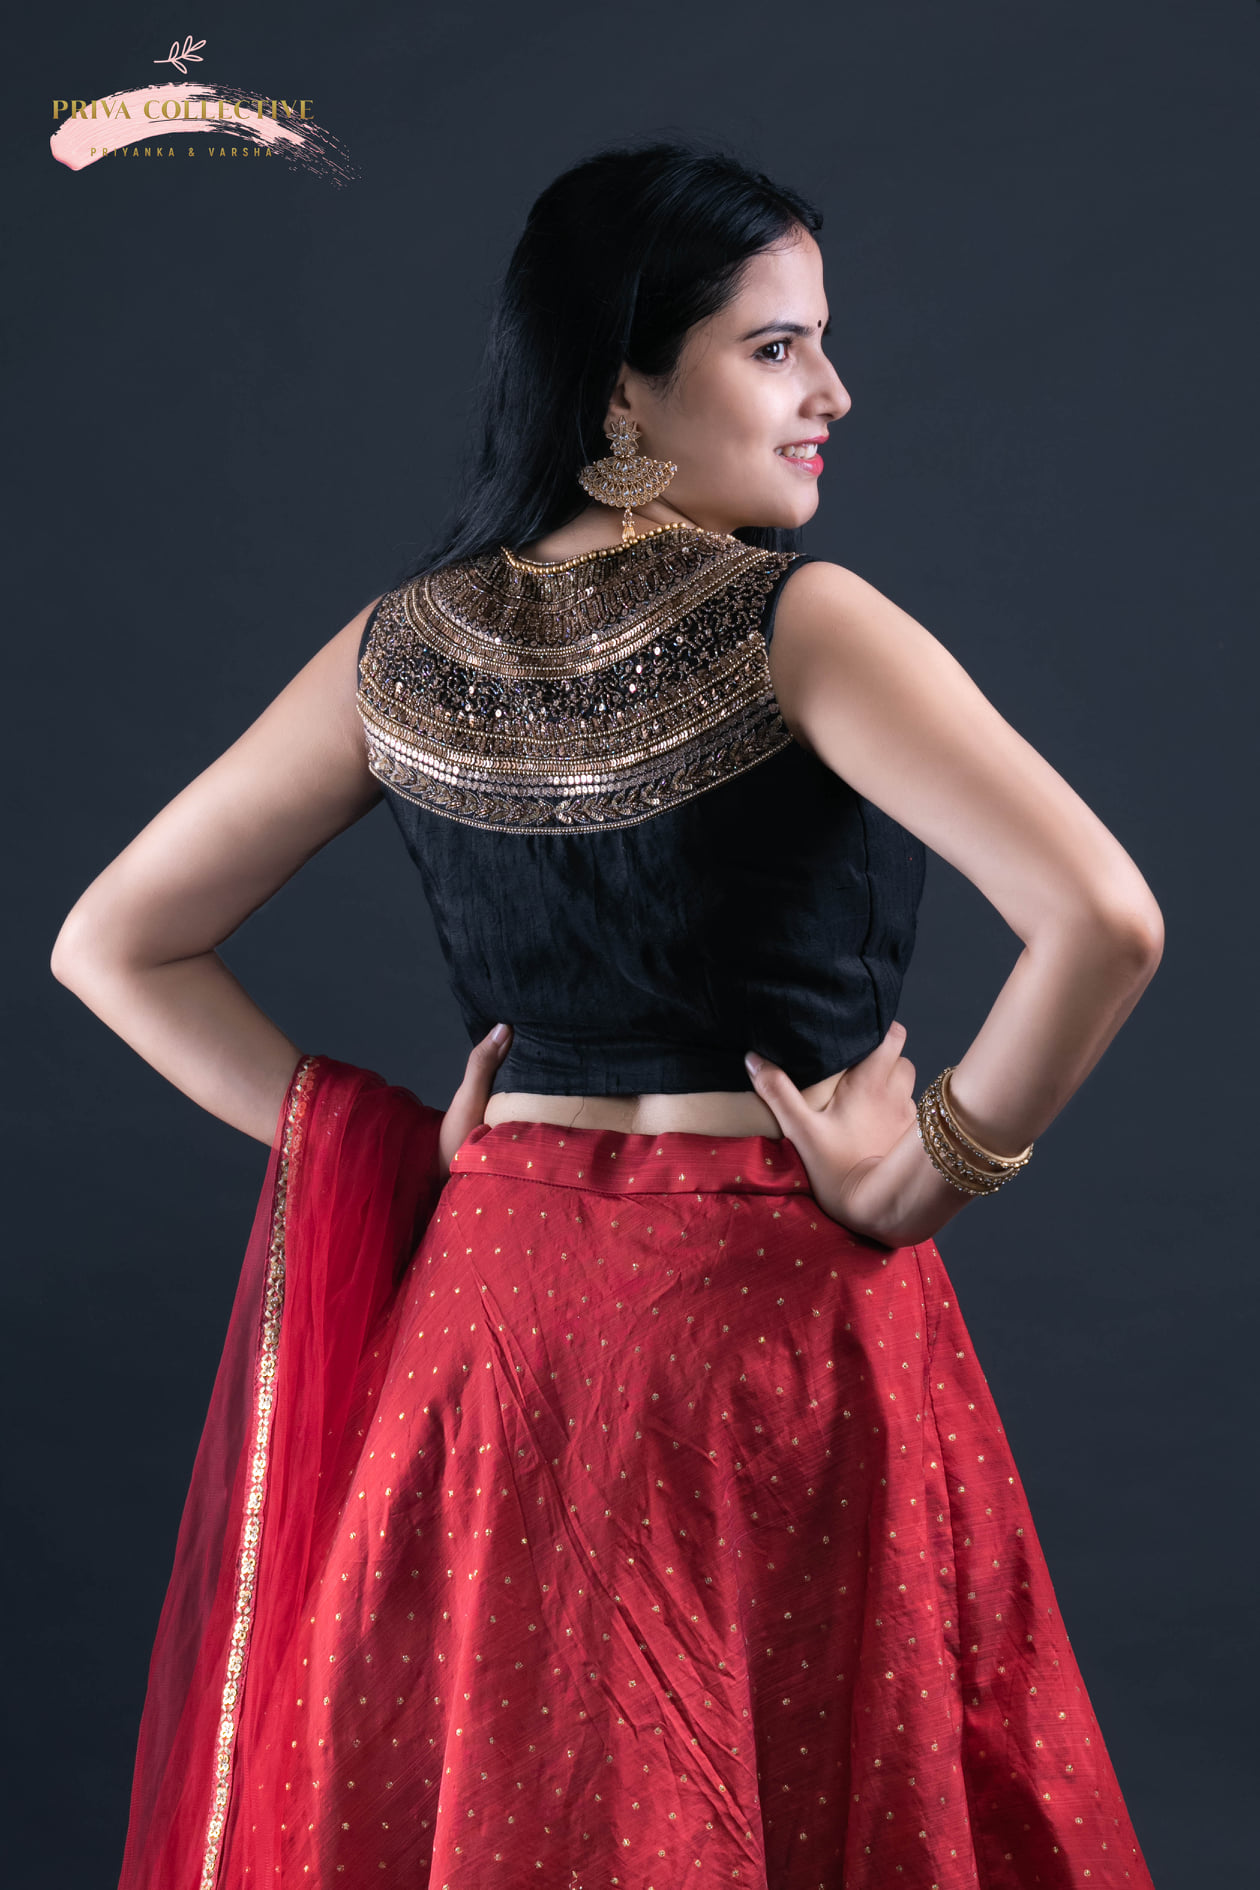 Maroon and black Lehenga. Black Heavily hand worked blouse paired with a maroon silk lehenga and maroon net duppata. Perfect for Sangeet  reception and mehndi Occasions. For prices and orders - Please email  call or whatsapp us. WhatsApp - 7995481918 Email - privacollective@gmail.com Call - 9160560480 plus size designer lehengas off white lehenga lehenga blouse design 2020-10-04